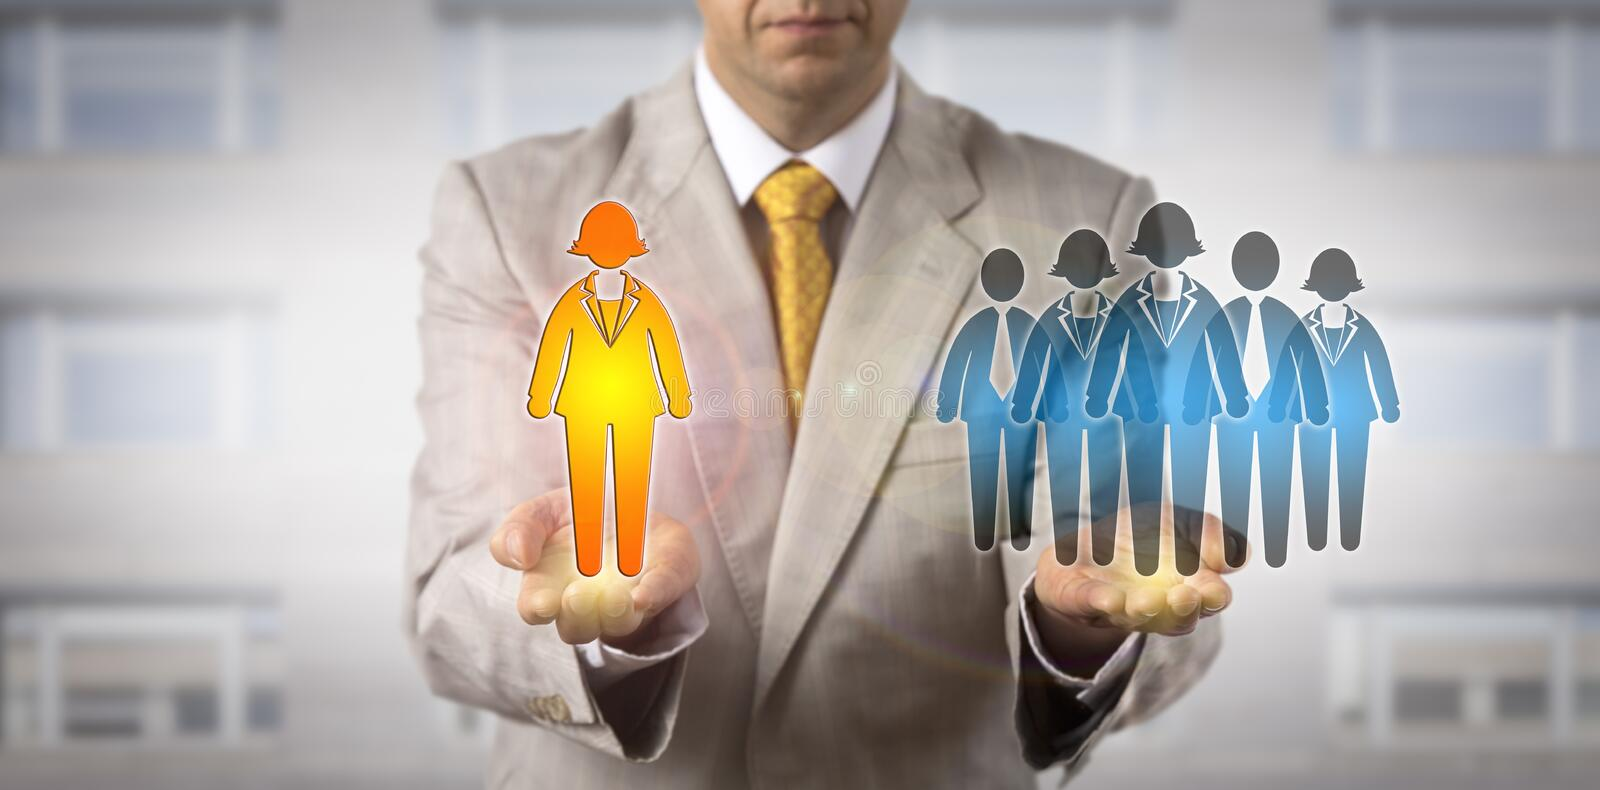 Manager Presenting Female Leader To Work Team stock photos